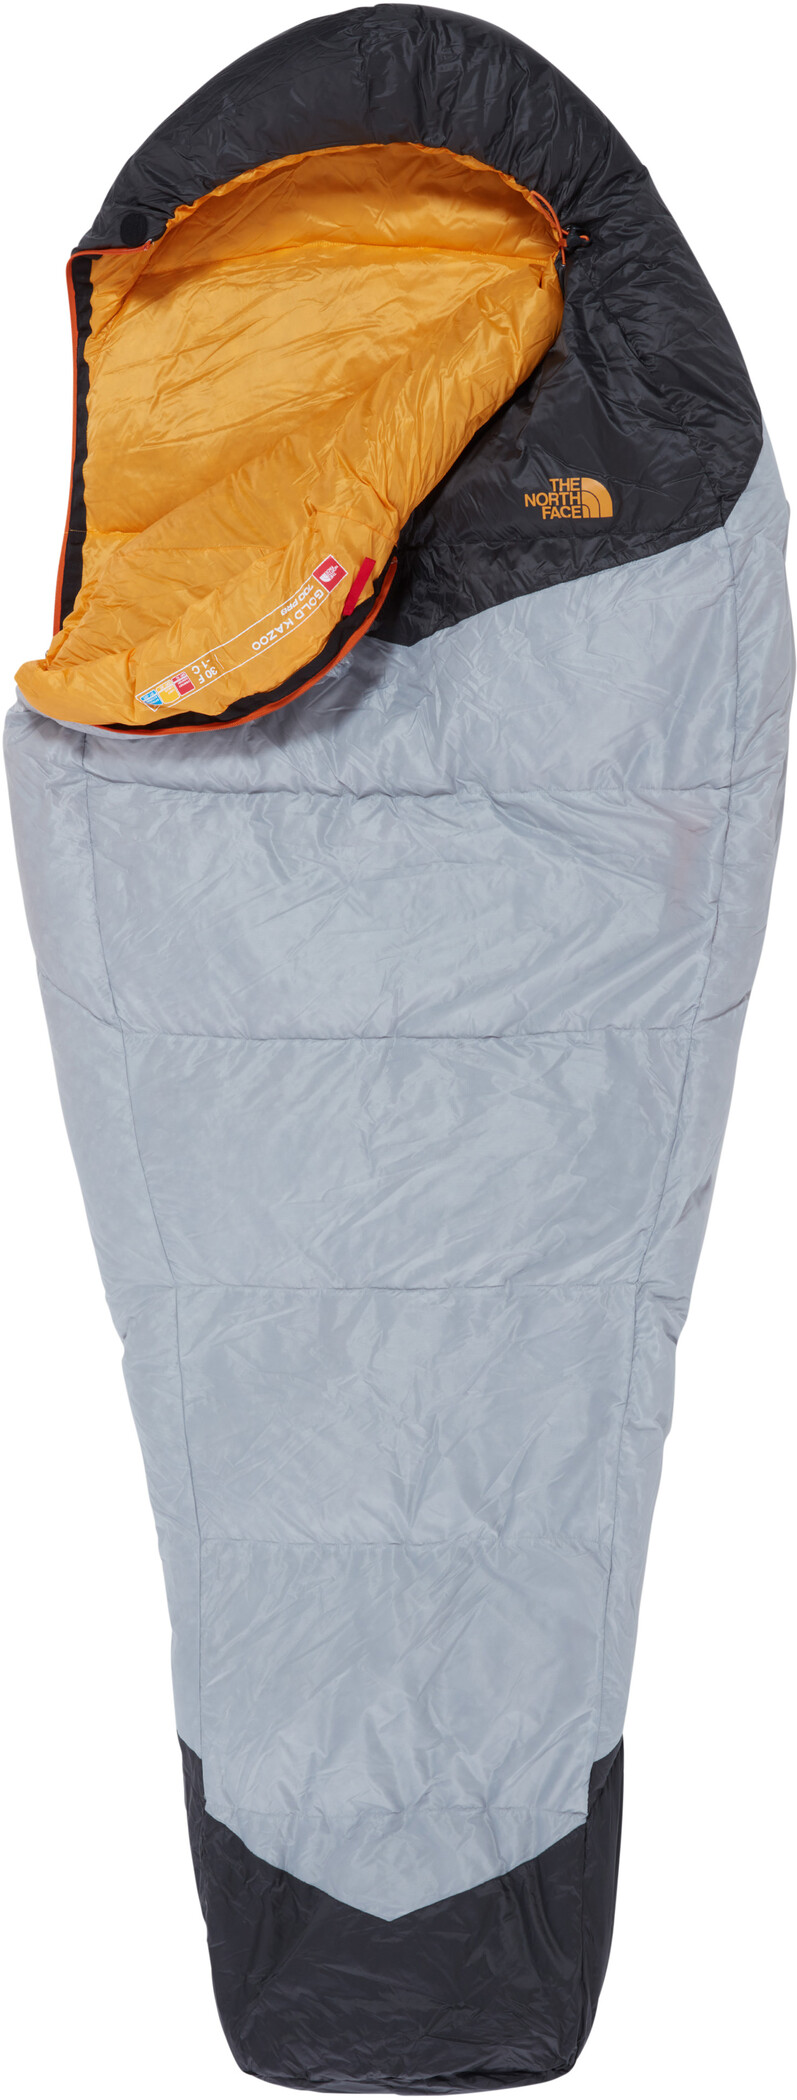 The North Face Gold Kazoo Sleeping Bag Long, high rise grey/radiant yellow (2019) | Misc. Transportation and Storage